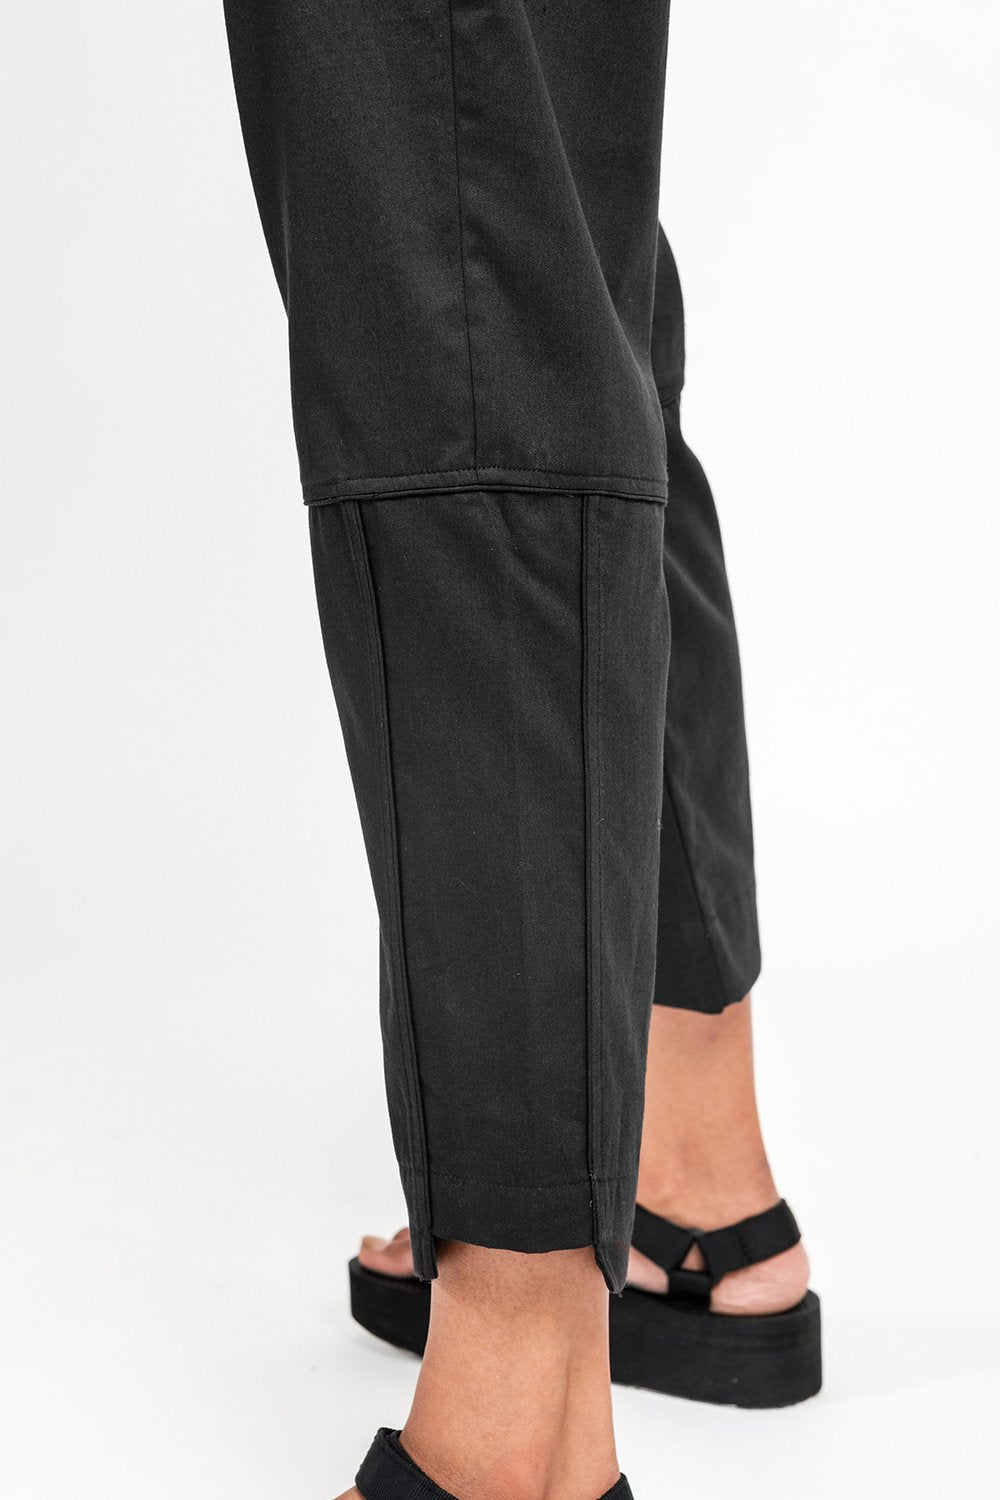 Black Unisex Pants. 100% Cotton. Designed in Madras, Made in India  | BISKIT UNISEX CLOTHING LABEL